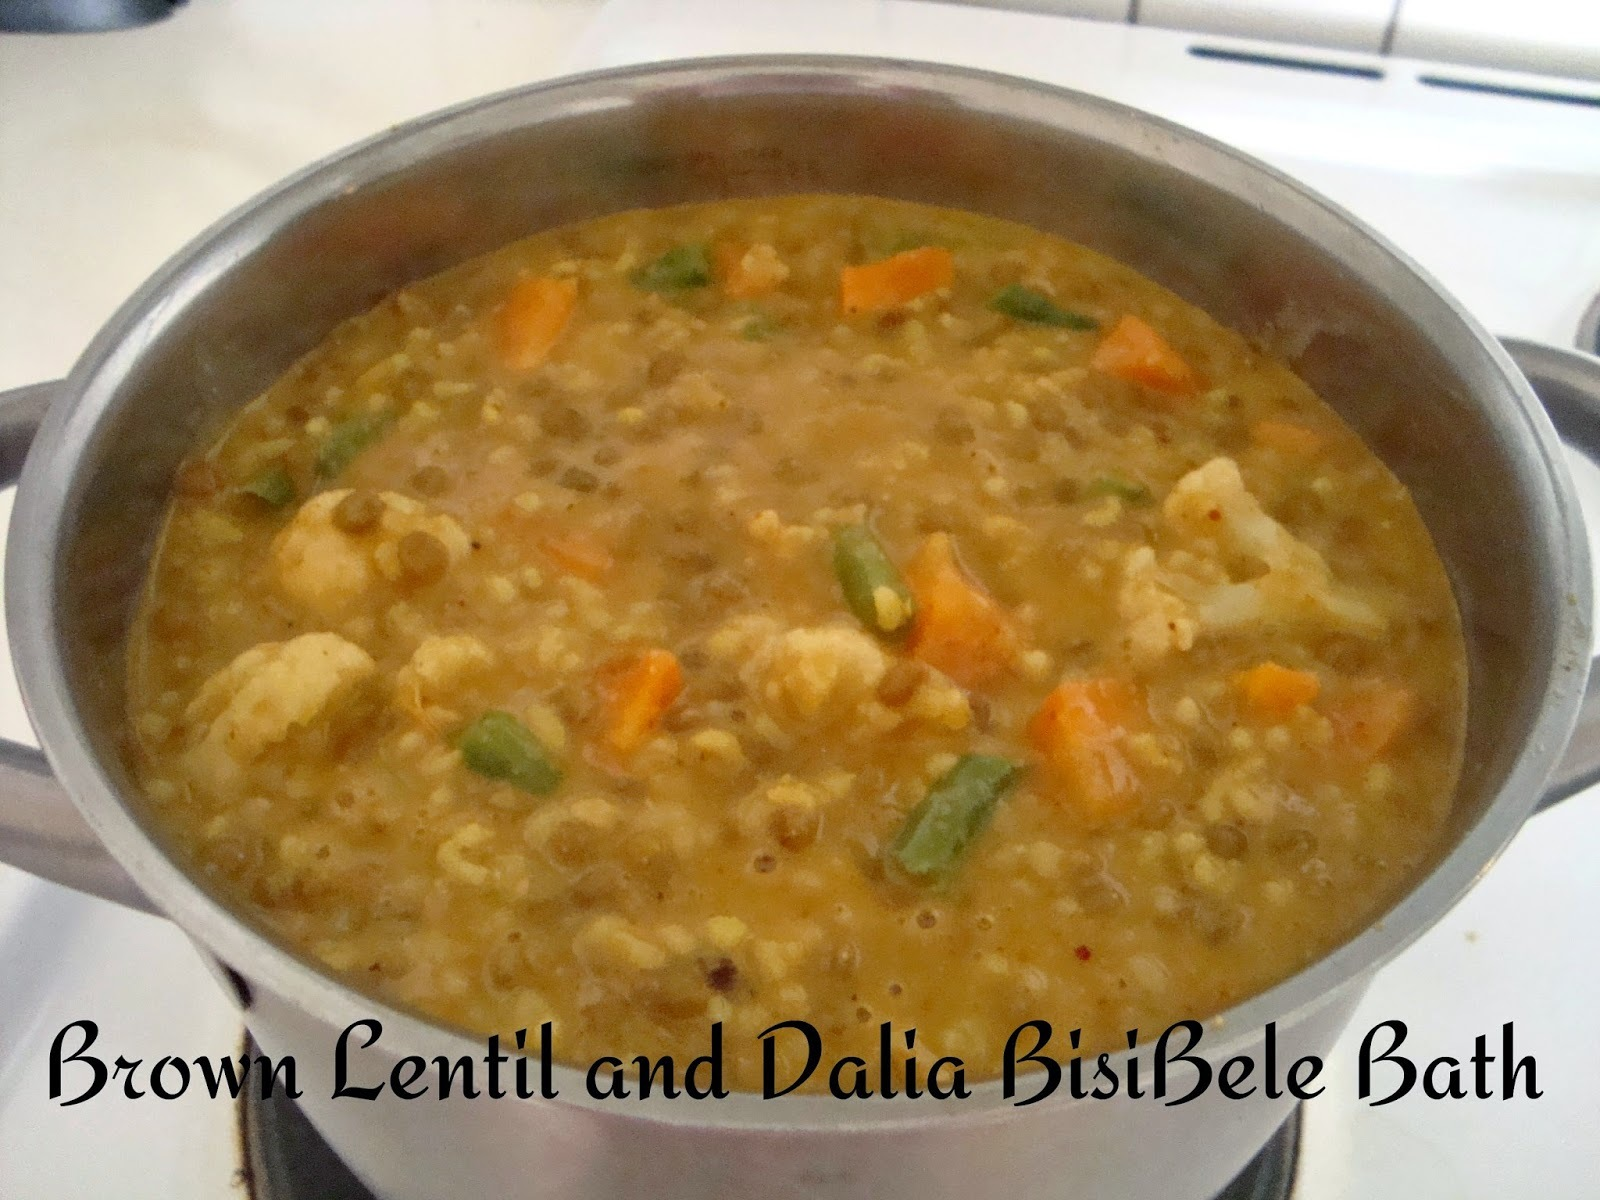 Brown lentil and Dalia BisiBeleBath